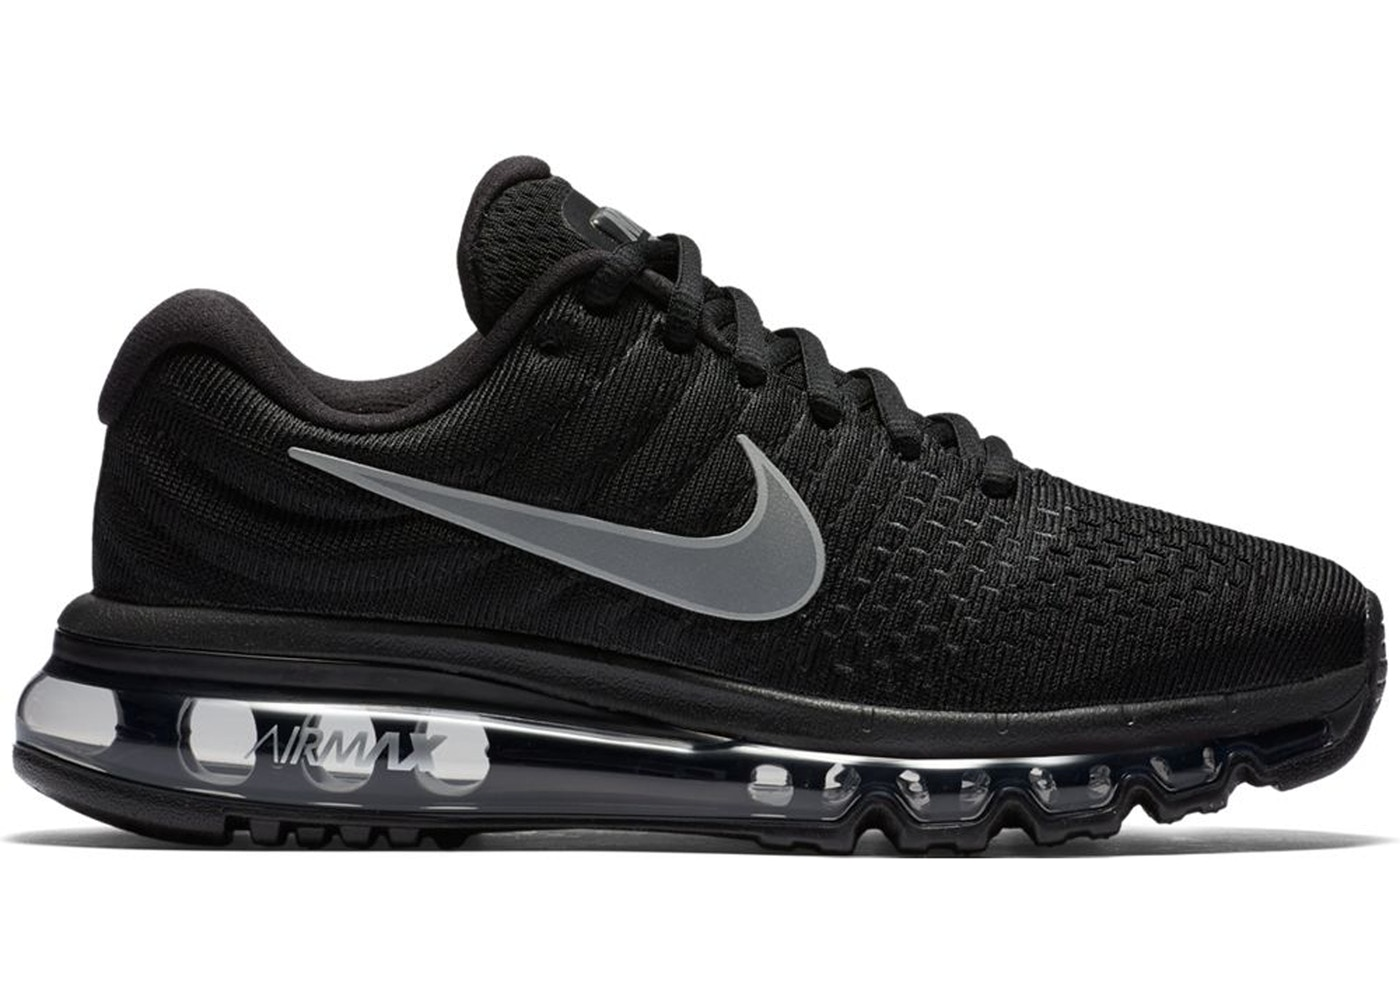 check out 5dd8d 80c57 Air Max 2017 Black Anthracite (W)